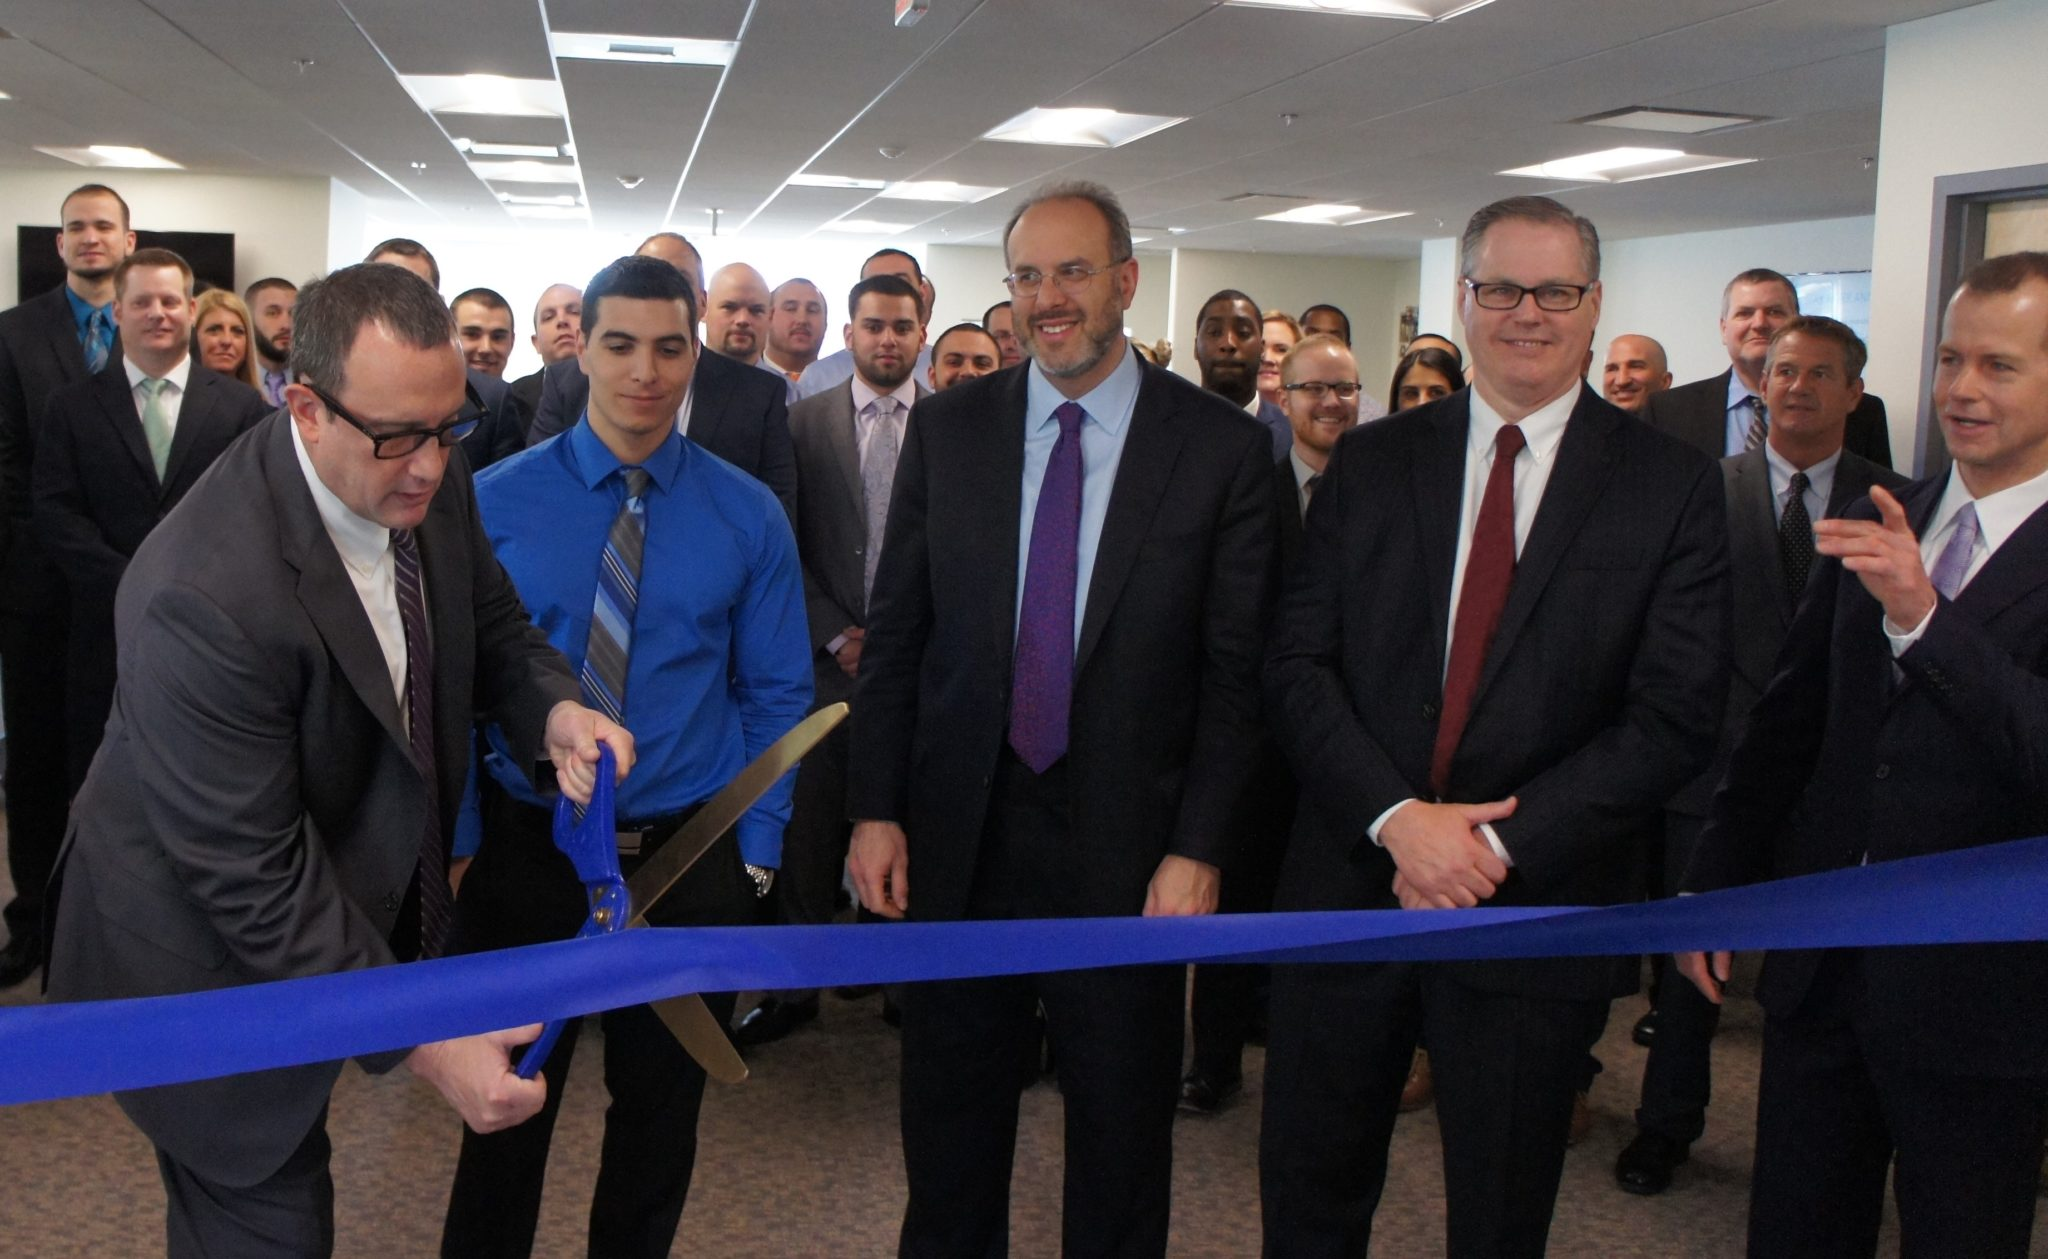 Granite Telecommunications moved to larger office and announced Wednesday. It plans to hire at least 50 new employees for the new Lincoln office. Pictured (from left to right): Paul Goodwin, R.I. General Assembly Senator Thomas J. Paolino, R.I. Secretary of Commerce Stephen Pryor, Lincoln town administrator T. Joseph Almond, and Rand Currier/ COURTESY GRANITE